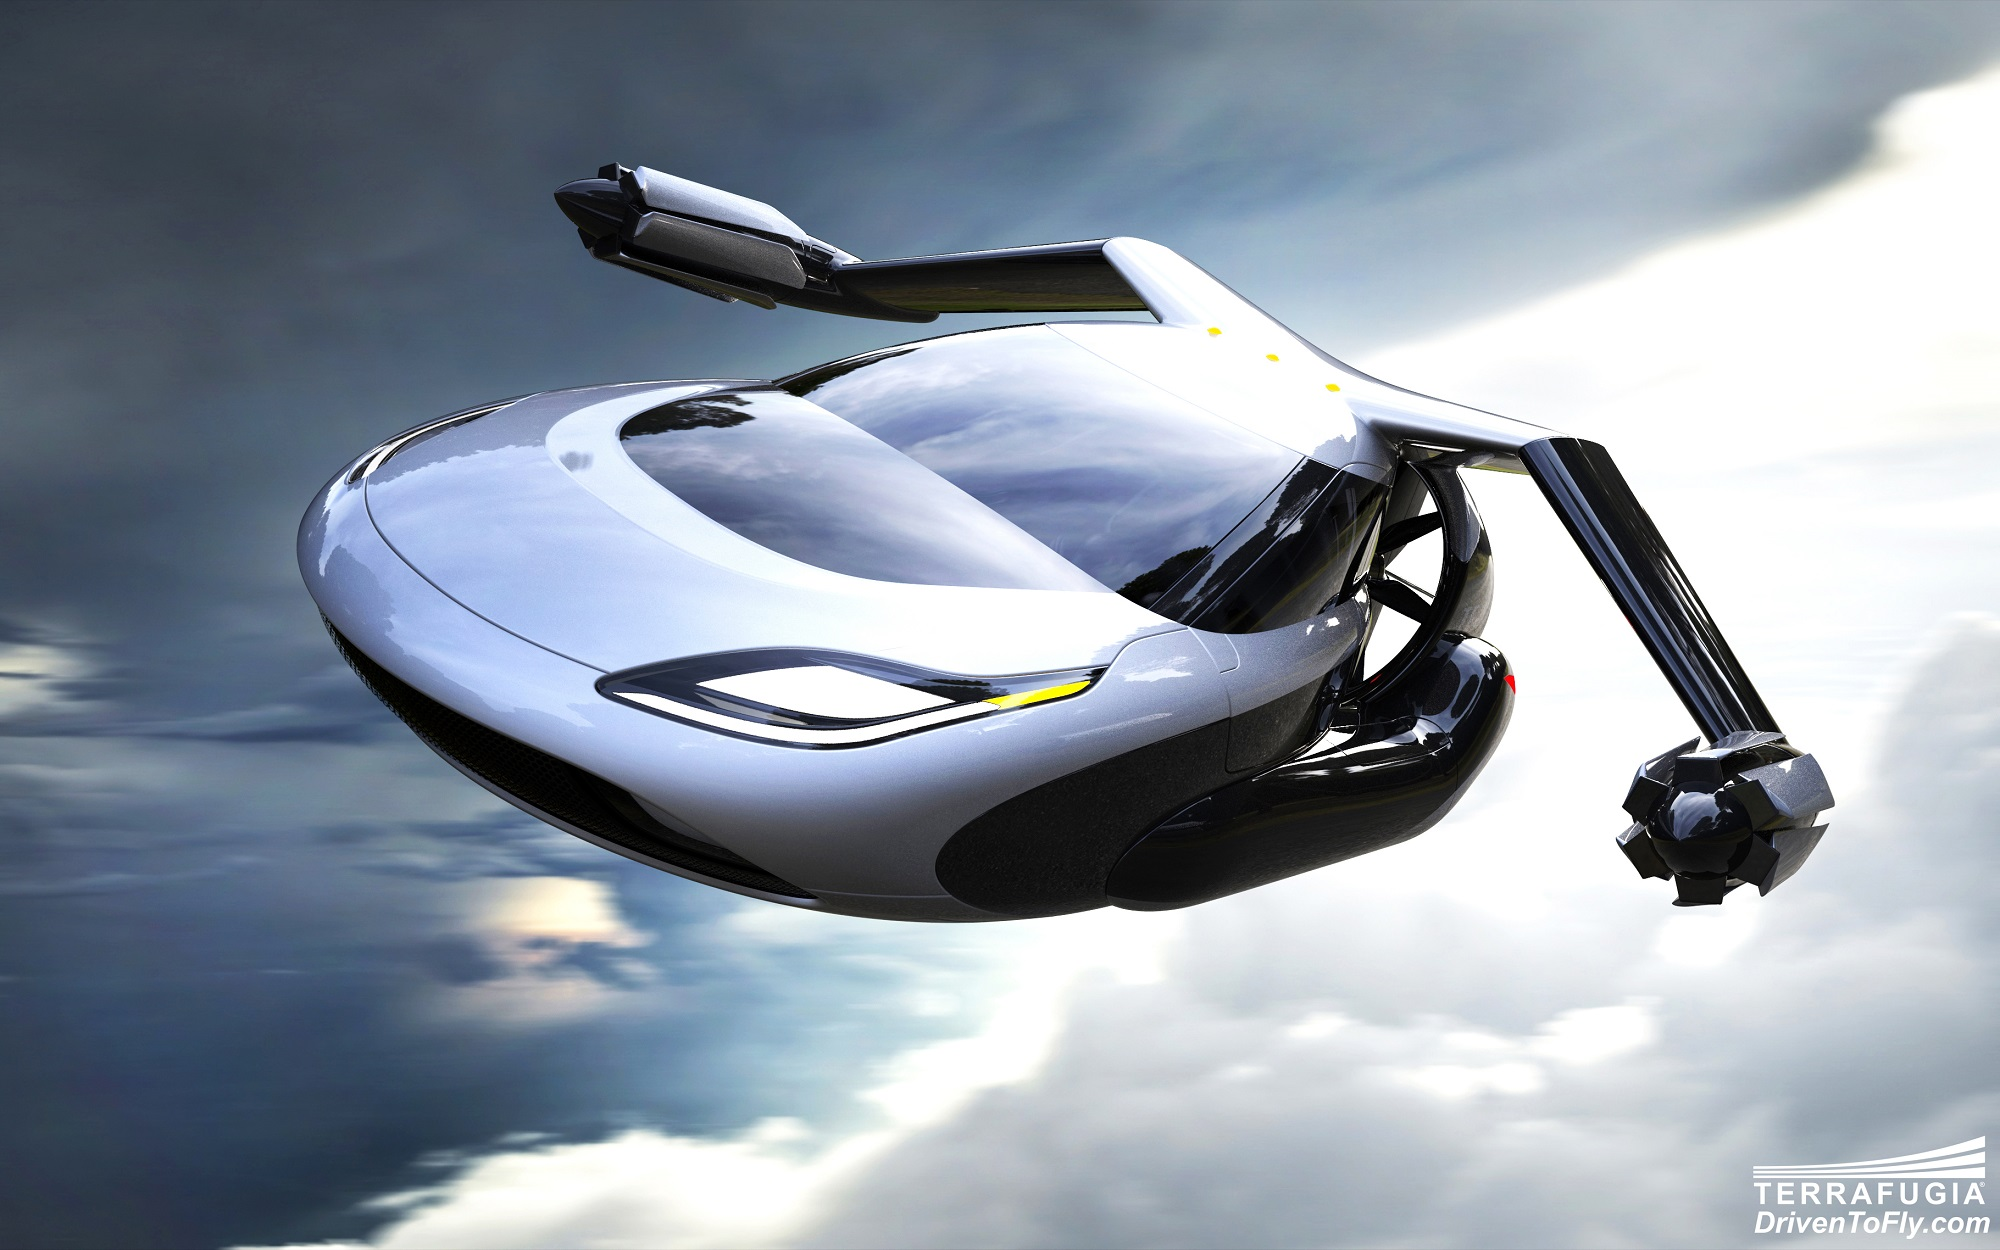 Terrafugia sold to Geely promises flying car by 2019